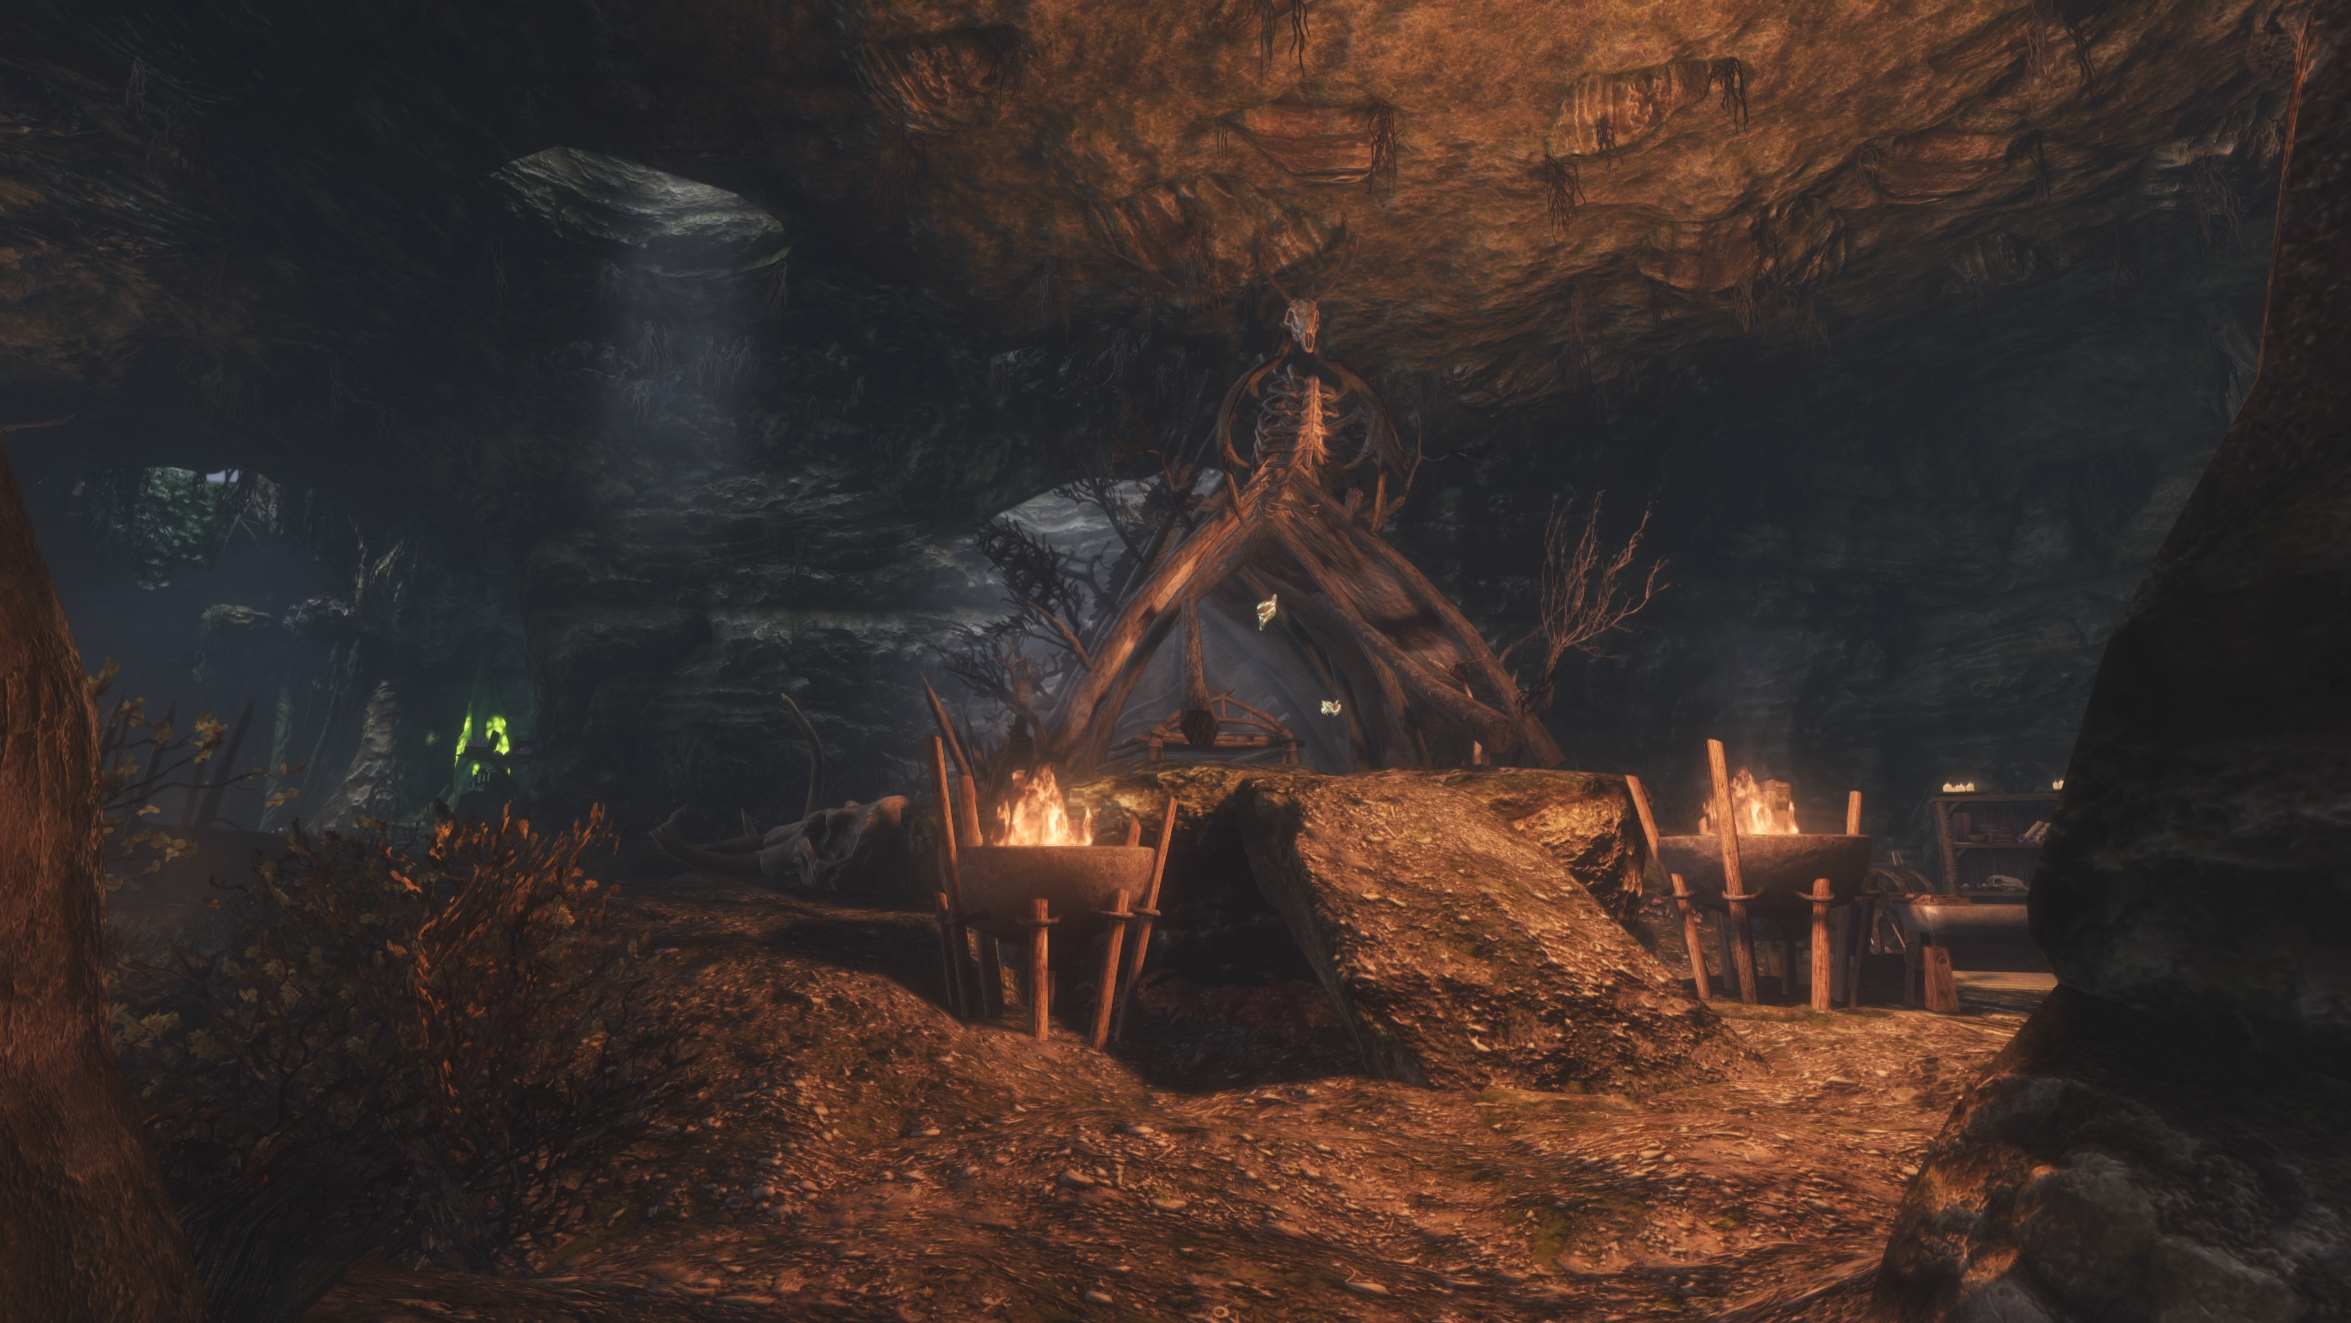 Shurrashi's Den - Voodoo styled Player Home